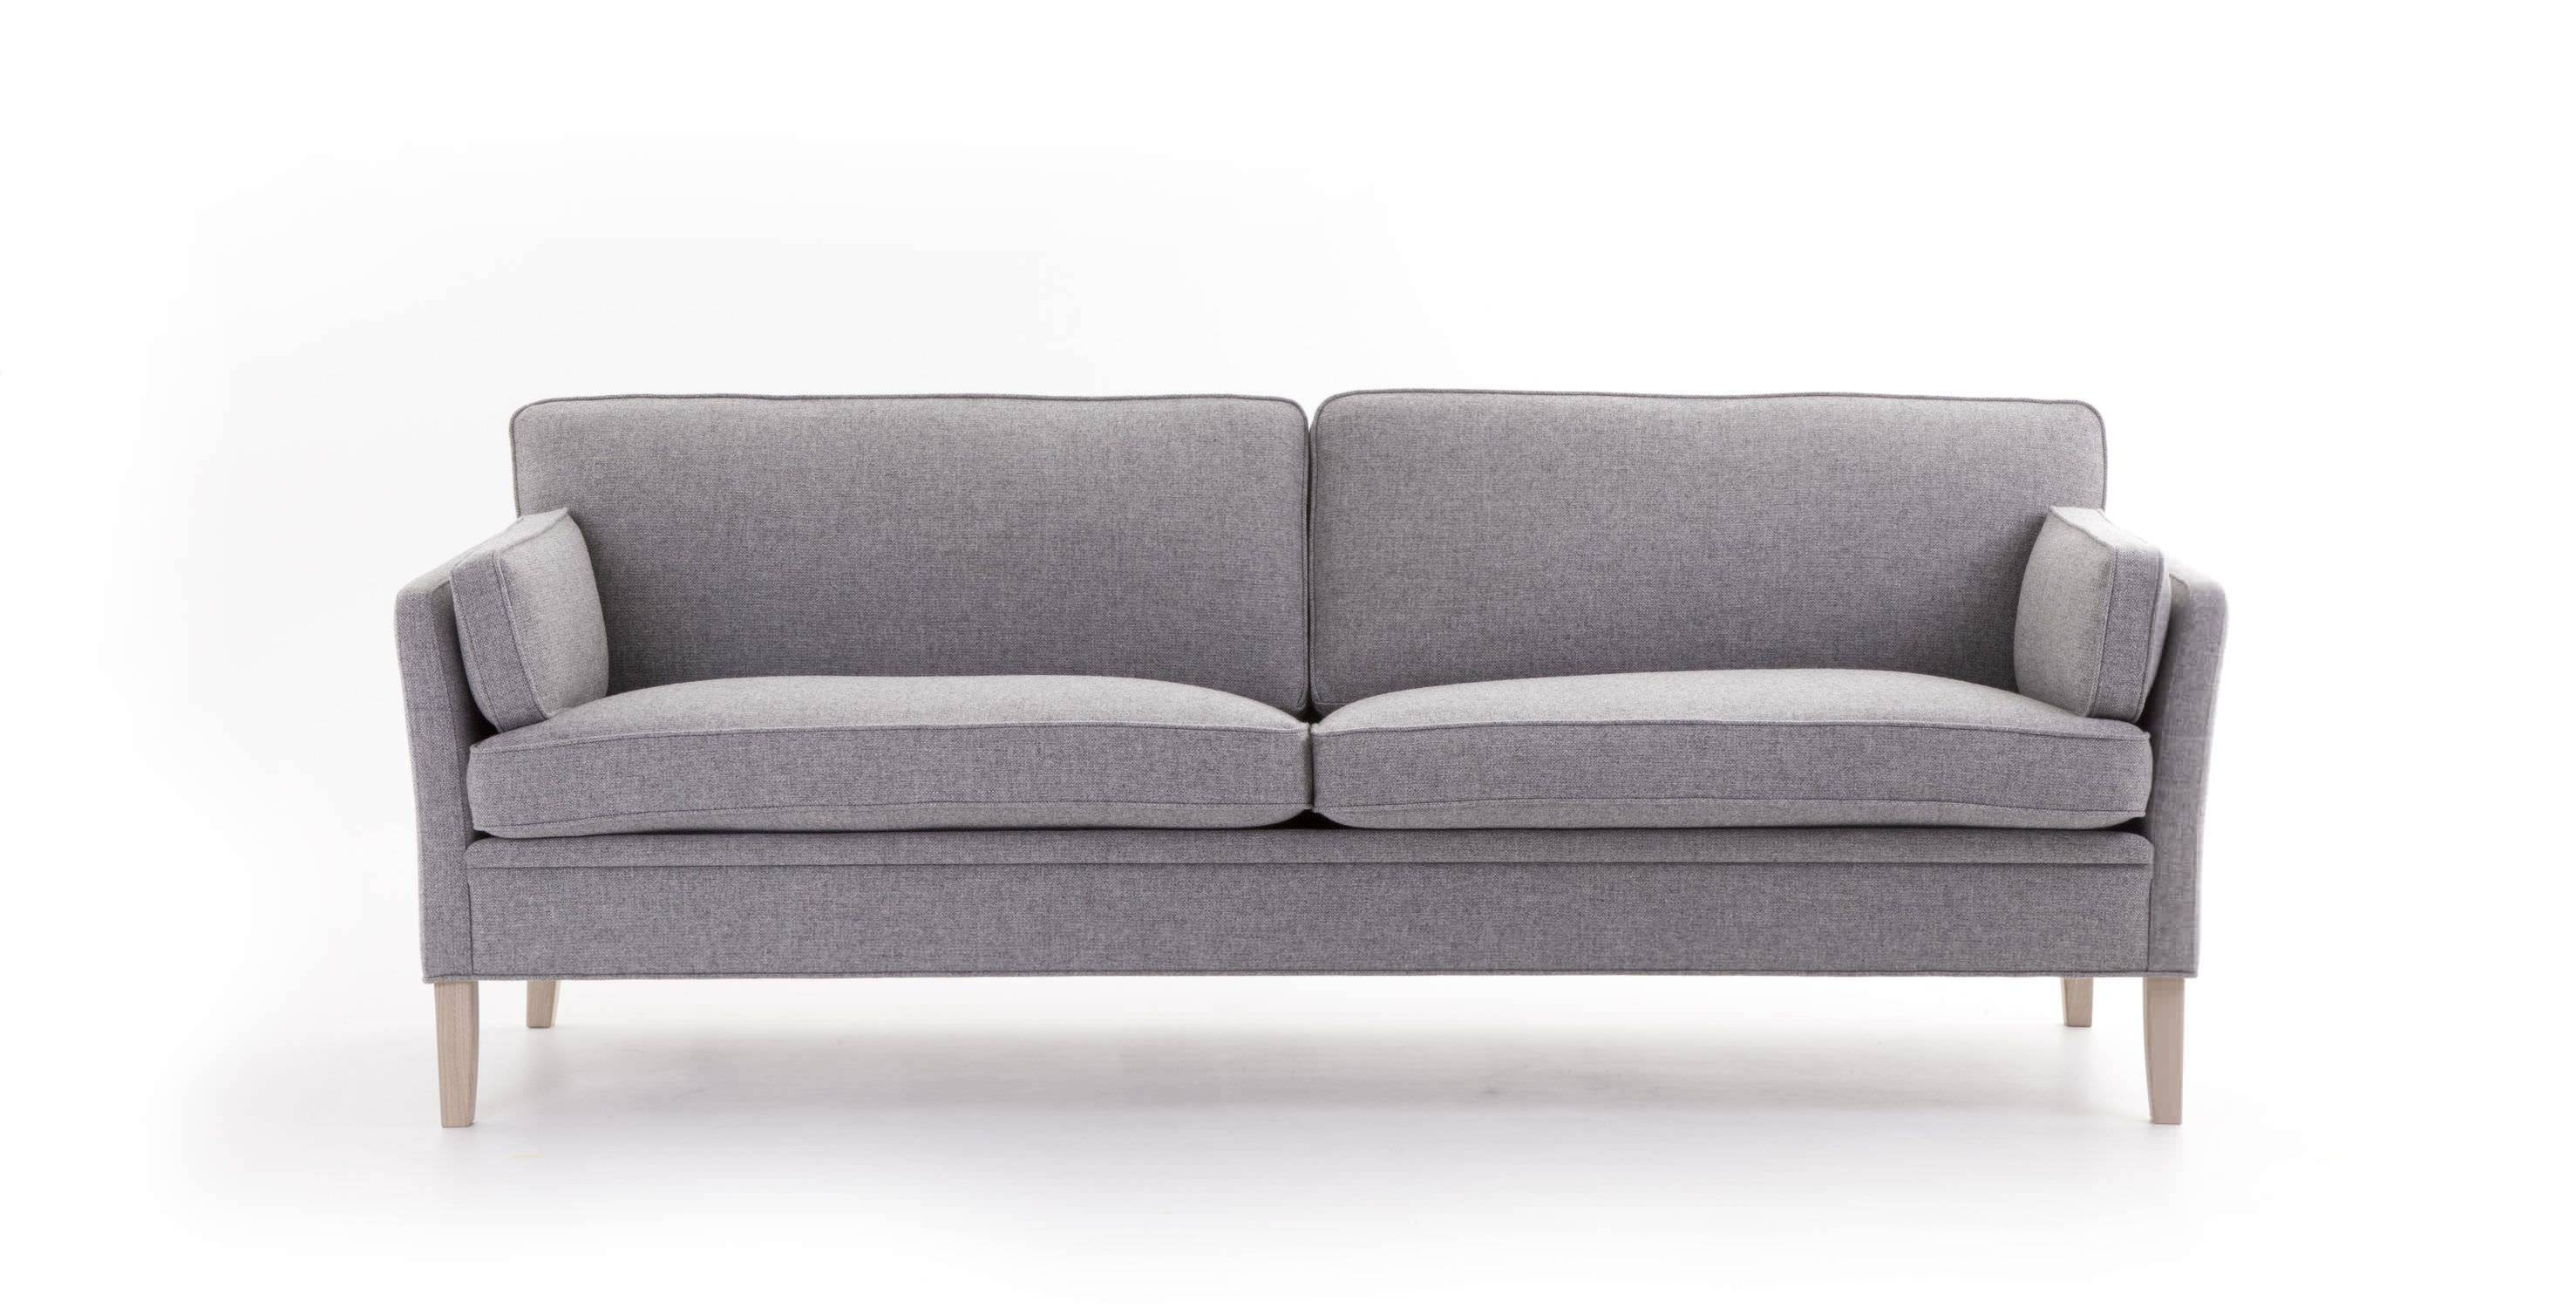 Traditional Sofa / Fabric / 2-Seater / With Removable Cover regarding Sofa With Removable Cover (Image 29 of 30)